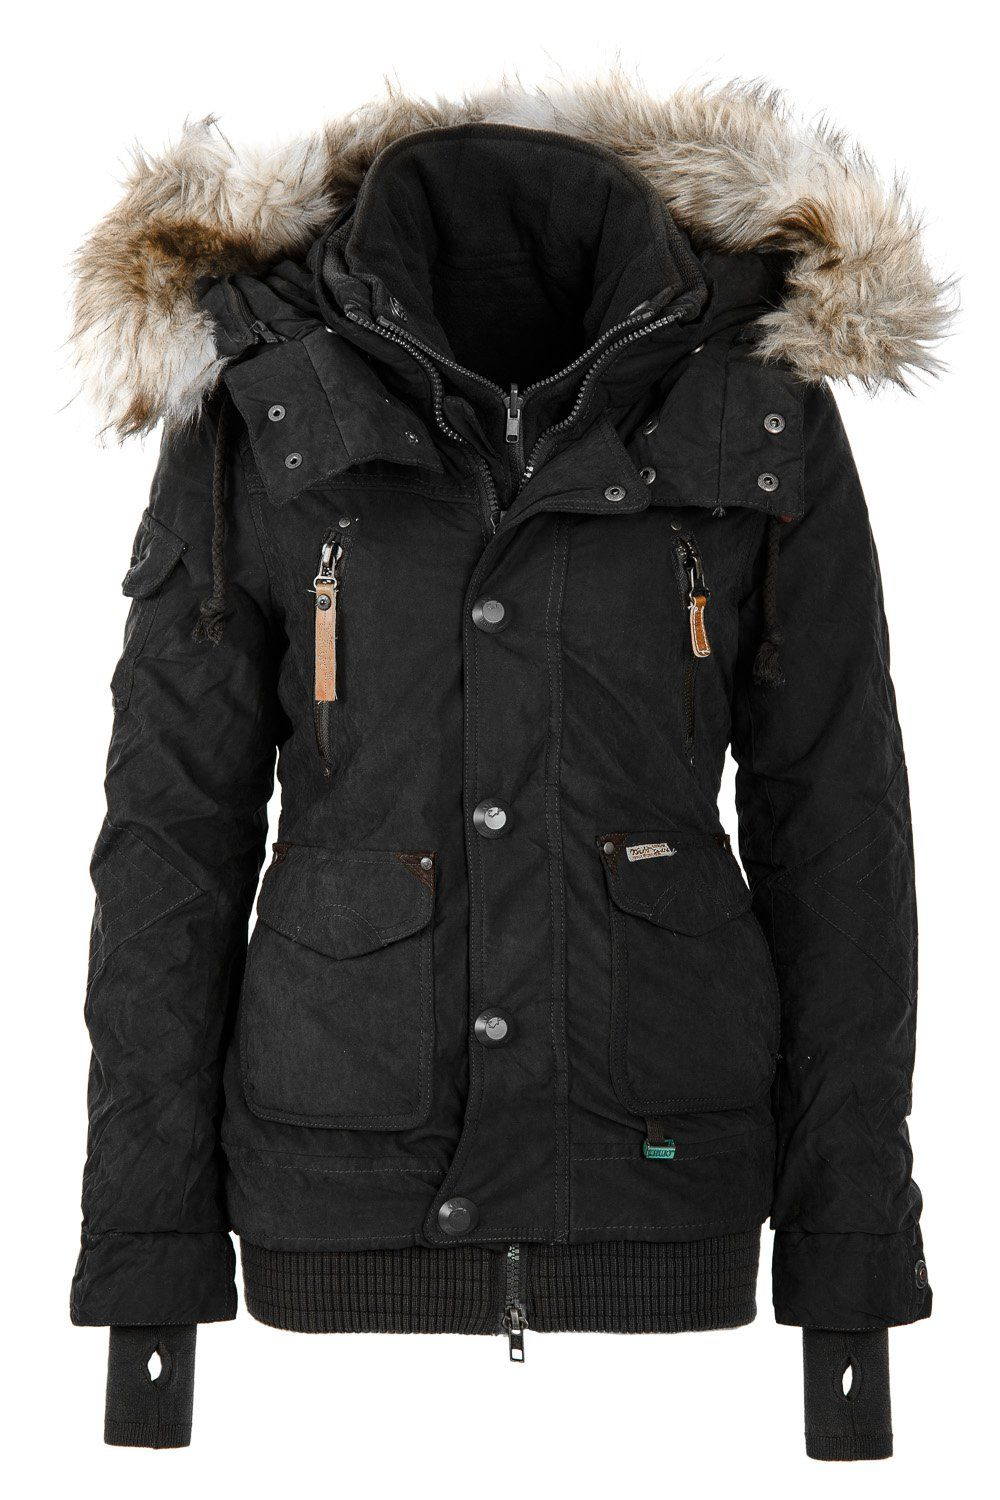 Women Winter Jackets: Choosing the Best Jacket for Winter | All